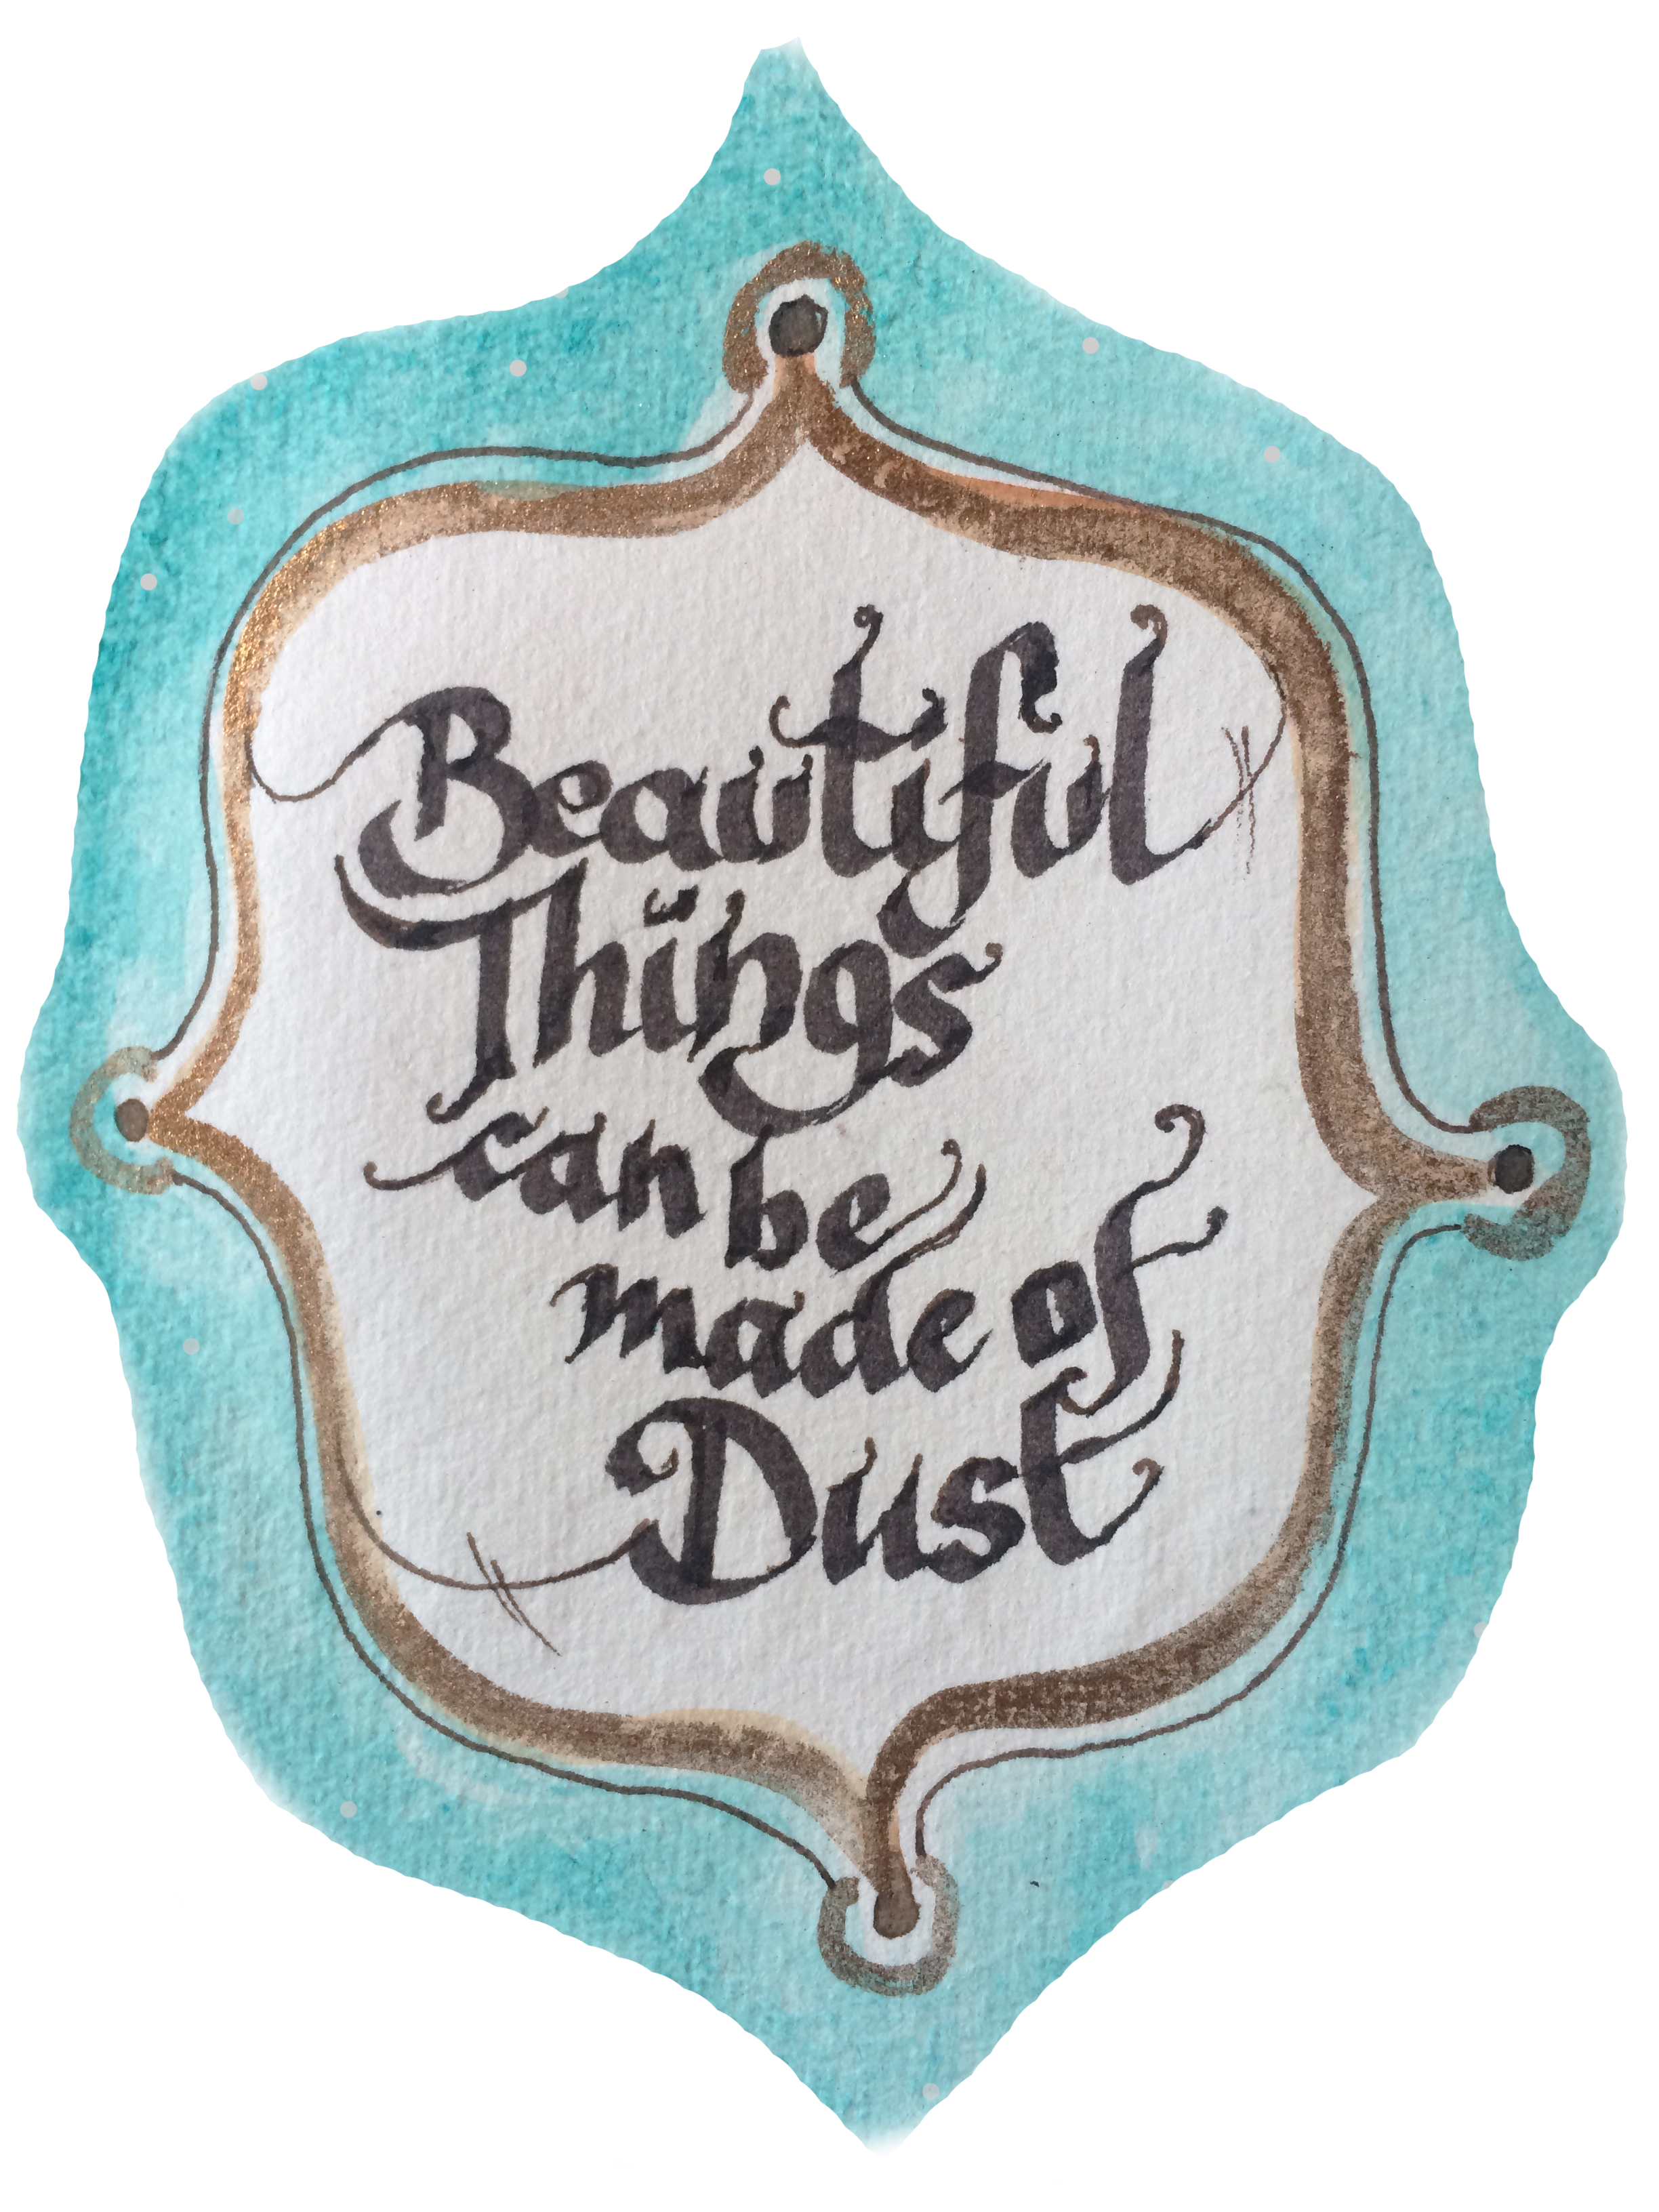 beautiful things can be made of dust